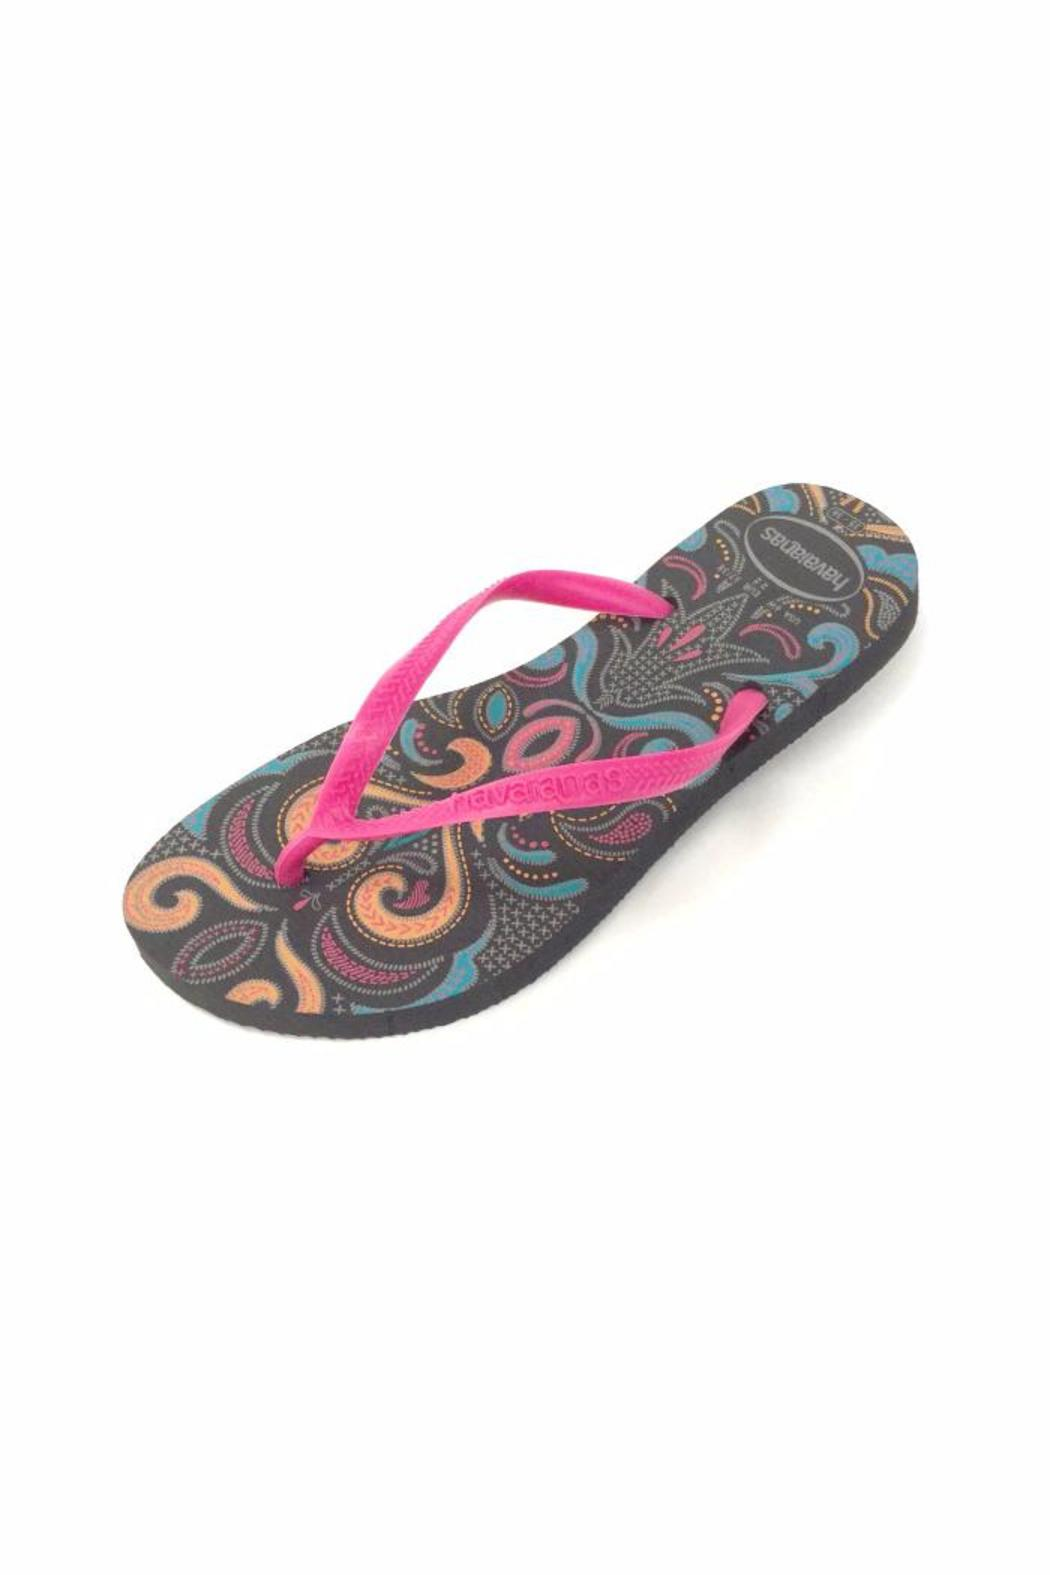 f1658c85dc72f0 Havaianas Havaiana Slim Lace from Santa Monica by Twist — Shoptiques